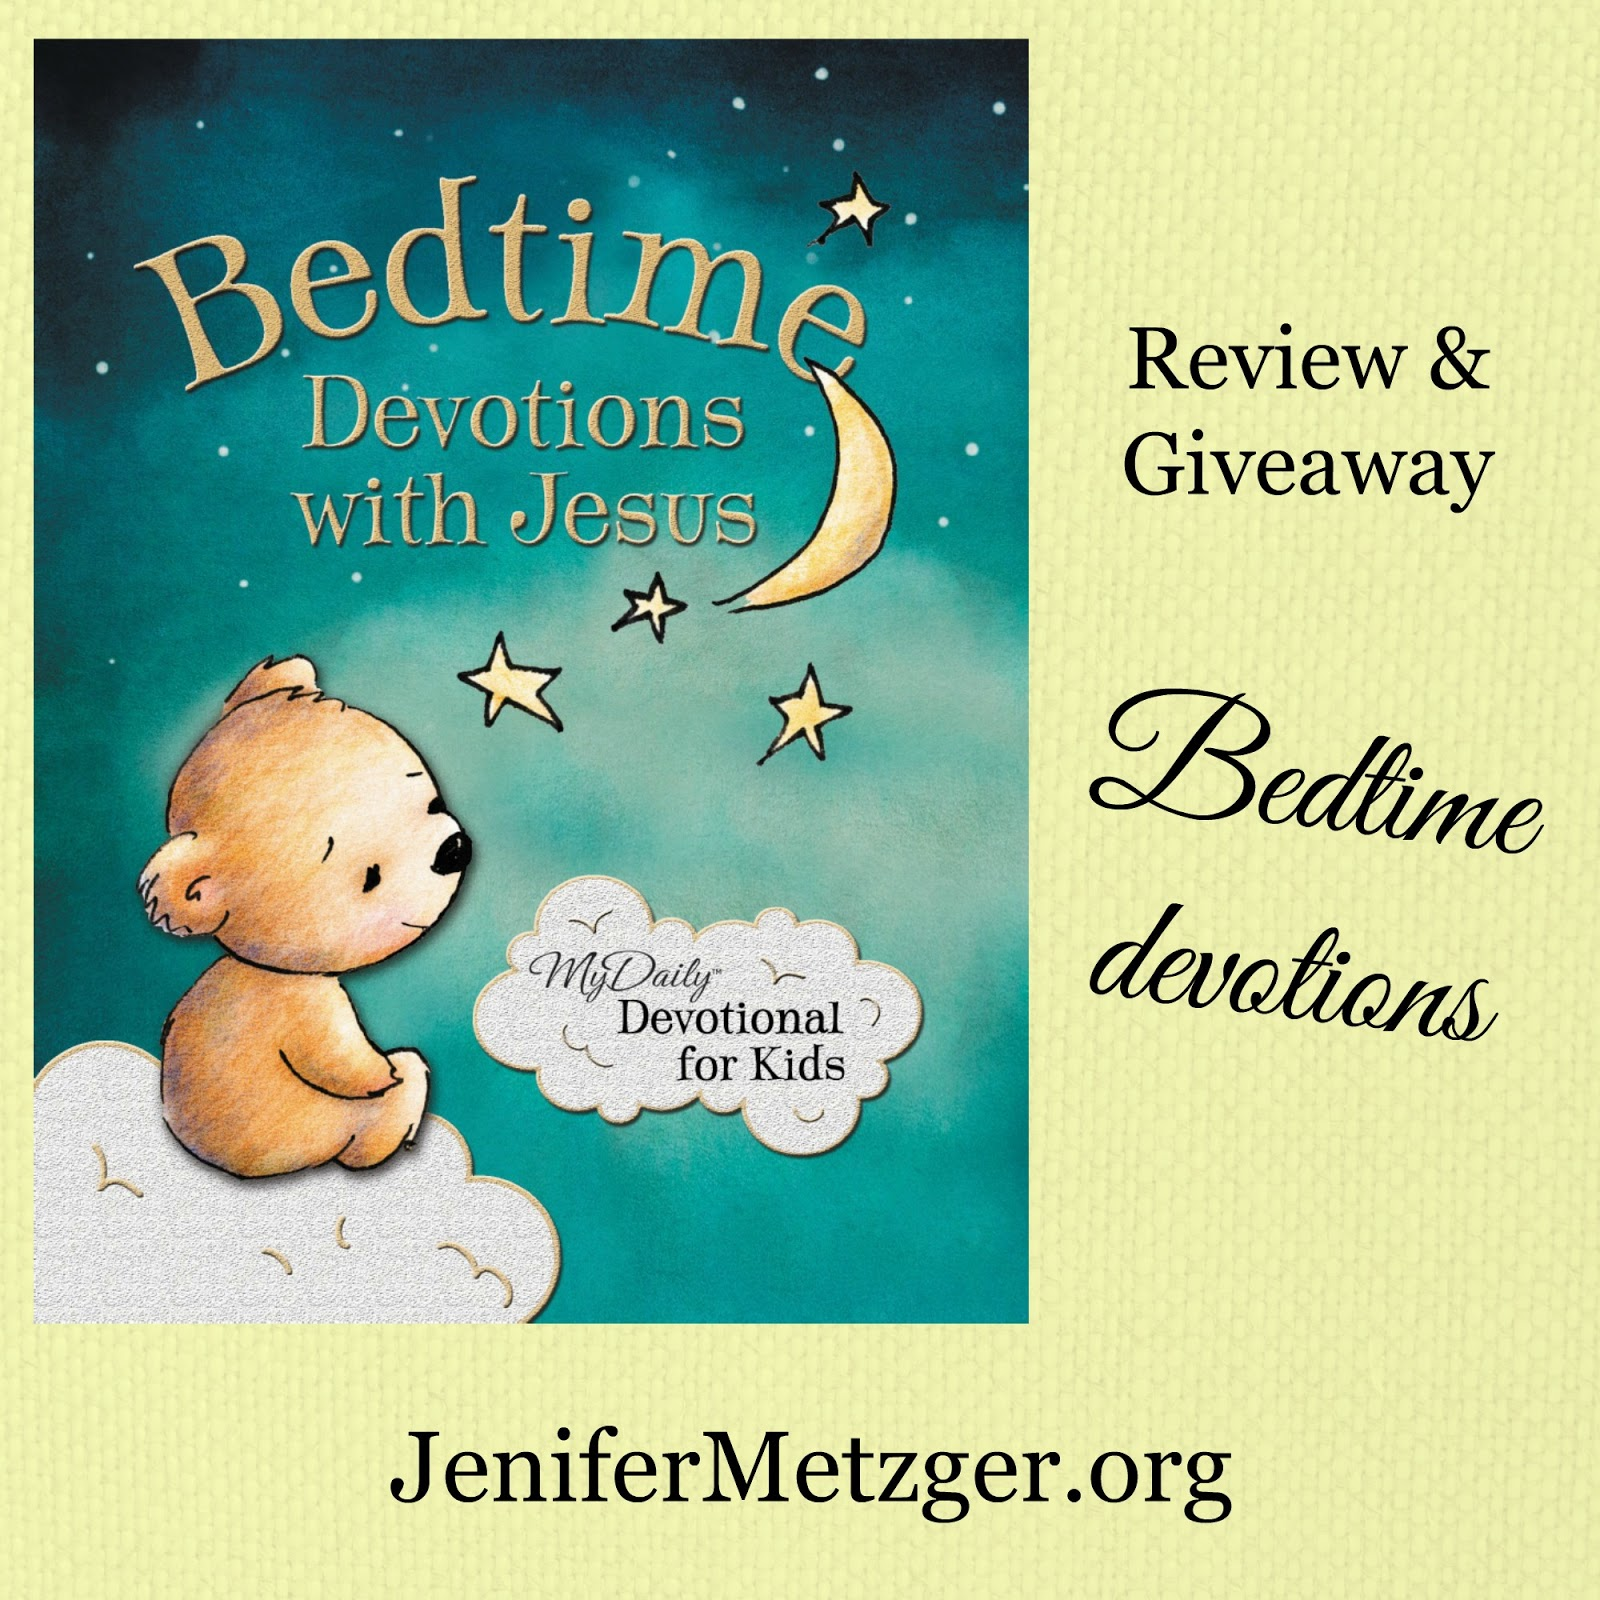 Jenifer metzger bedtime with the father giveaway with a scripture verse very short teaching encouragement for little ones it is perfect for snuggling up before sleepy time with jesus kristyandbryce Image collections